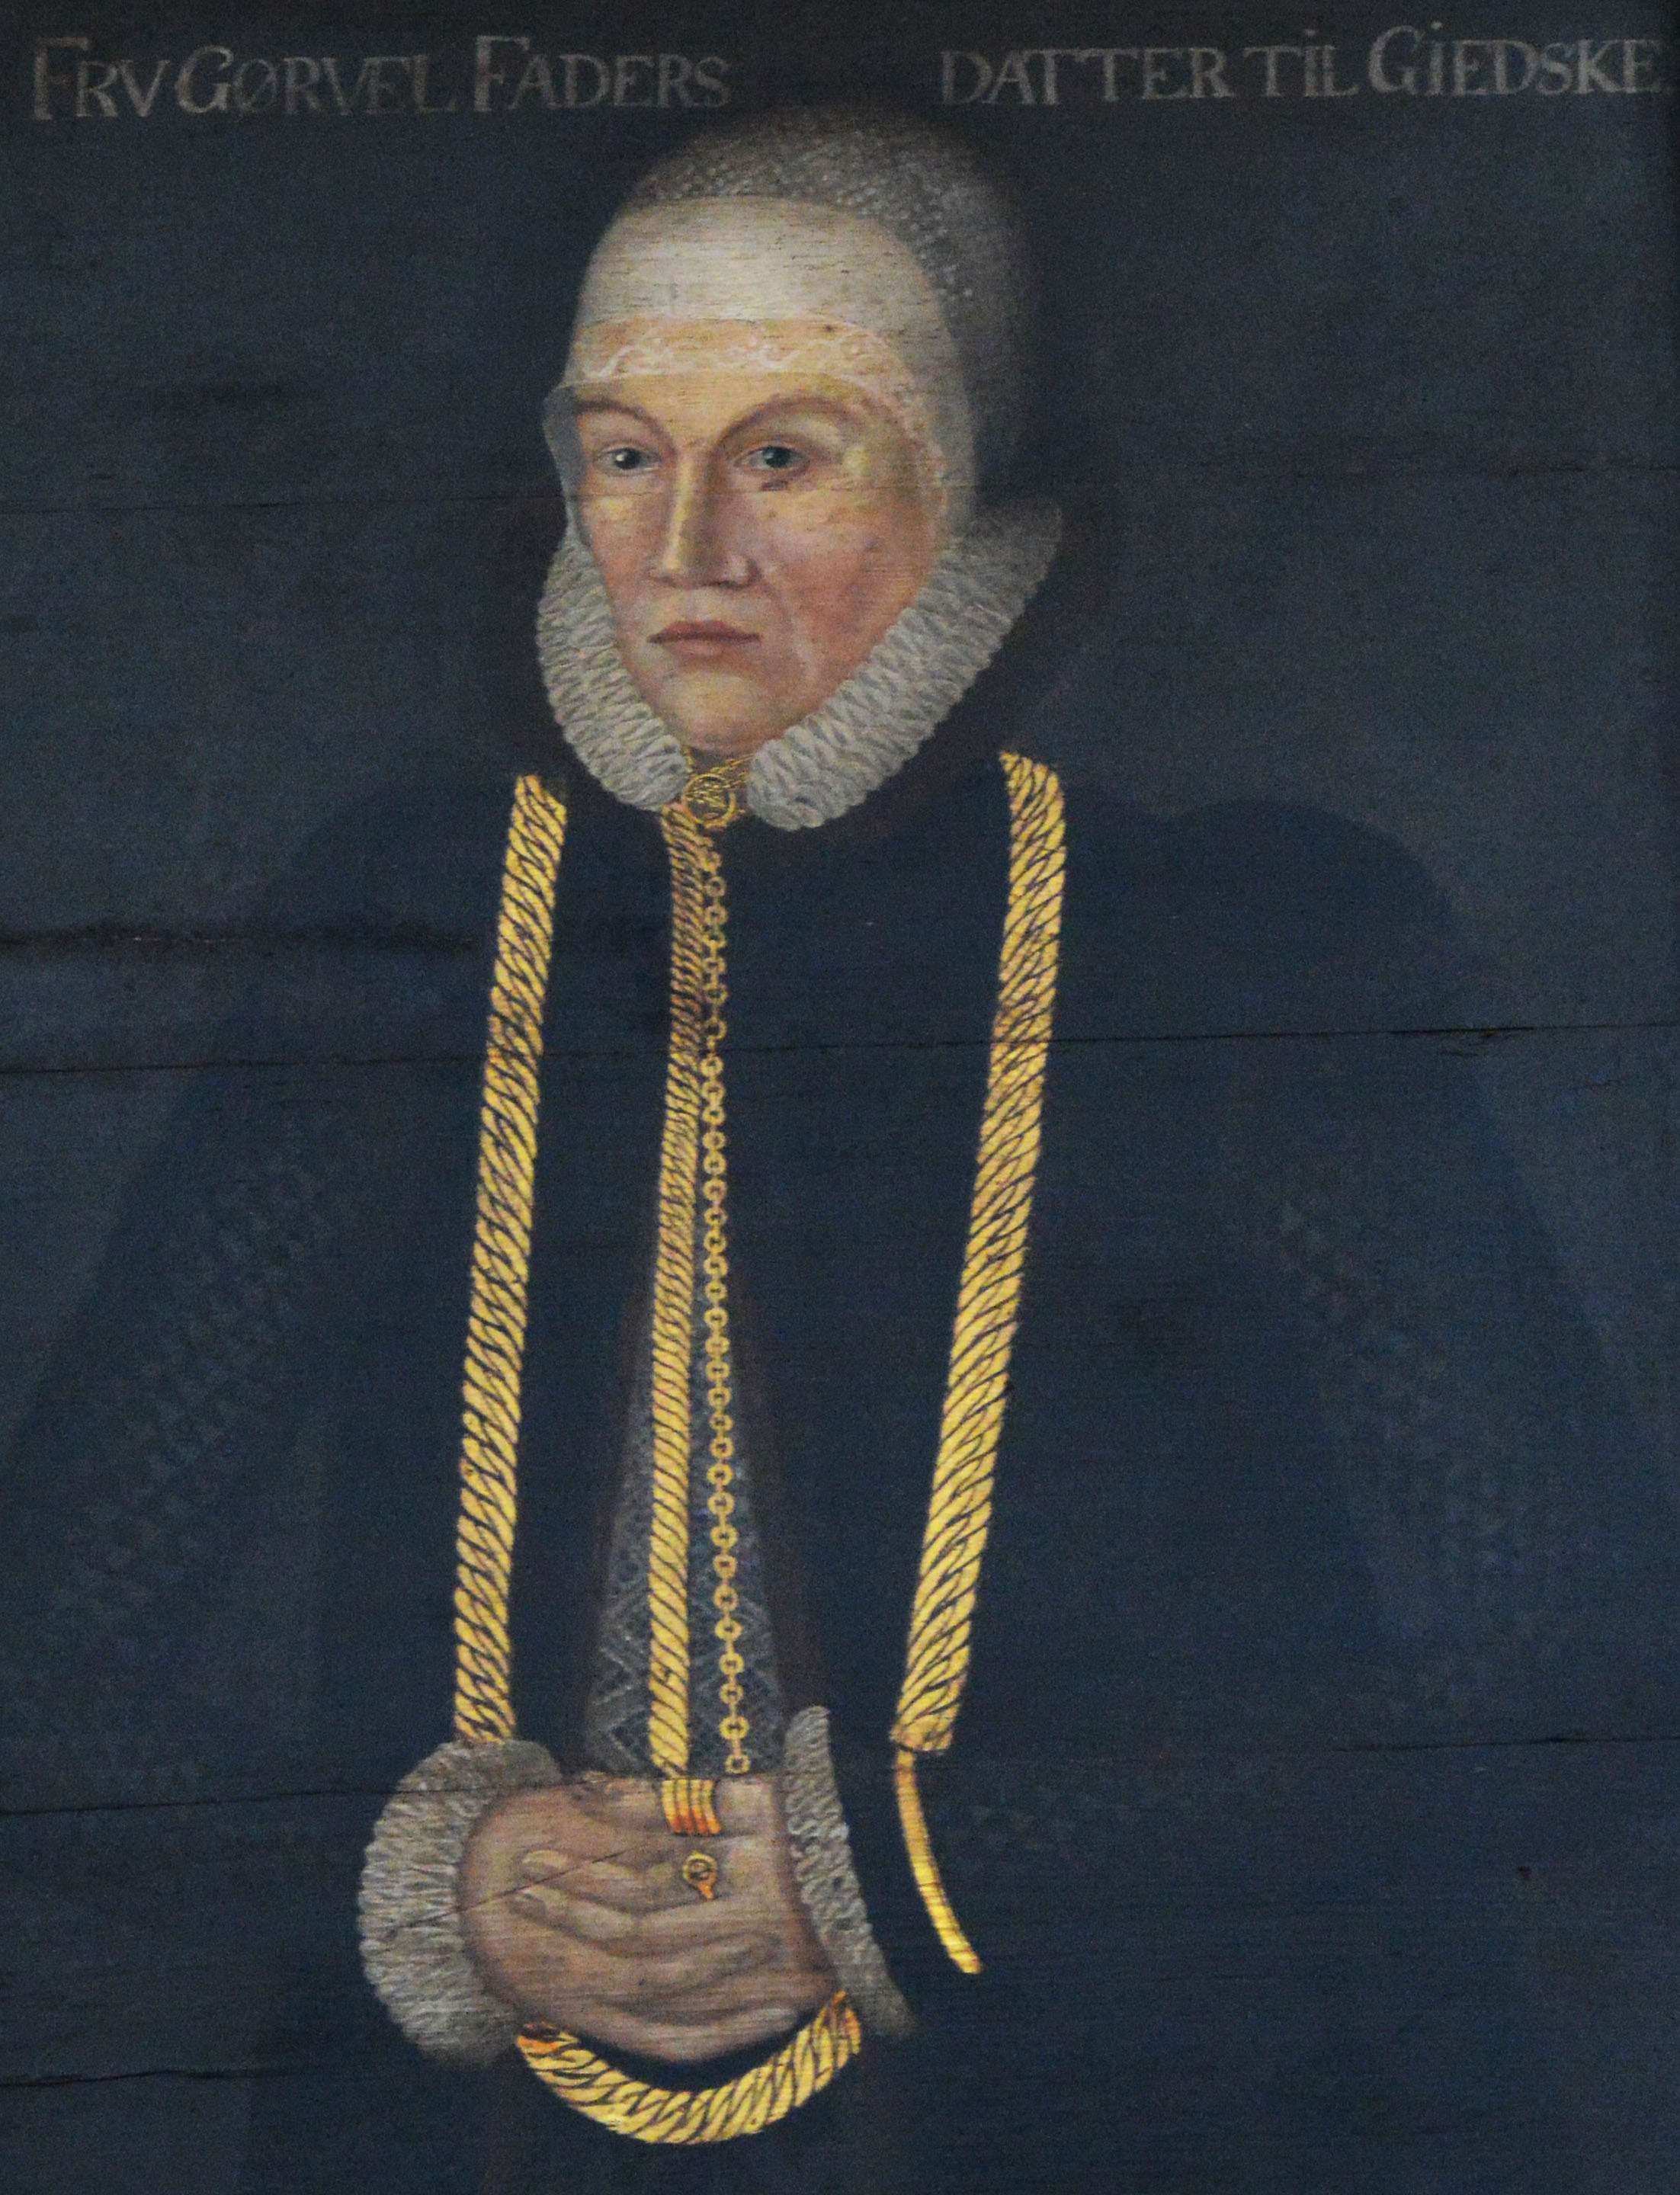 Görvel Faderdsdotter. Portrait in Lund Cathedral, artist and year unknown (likely the studio of Hans van Paschen, 1567), photographer unknown